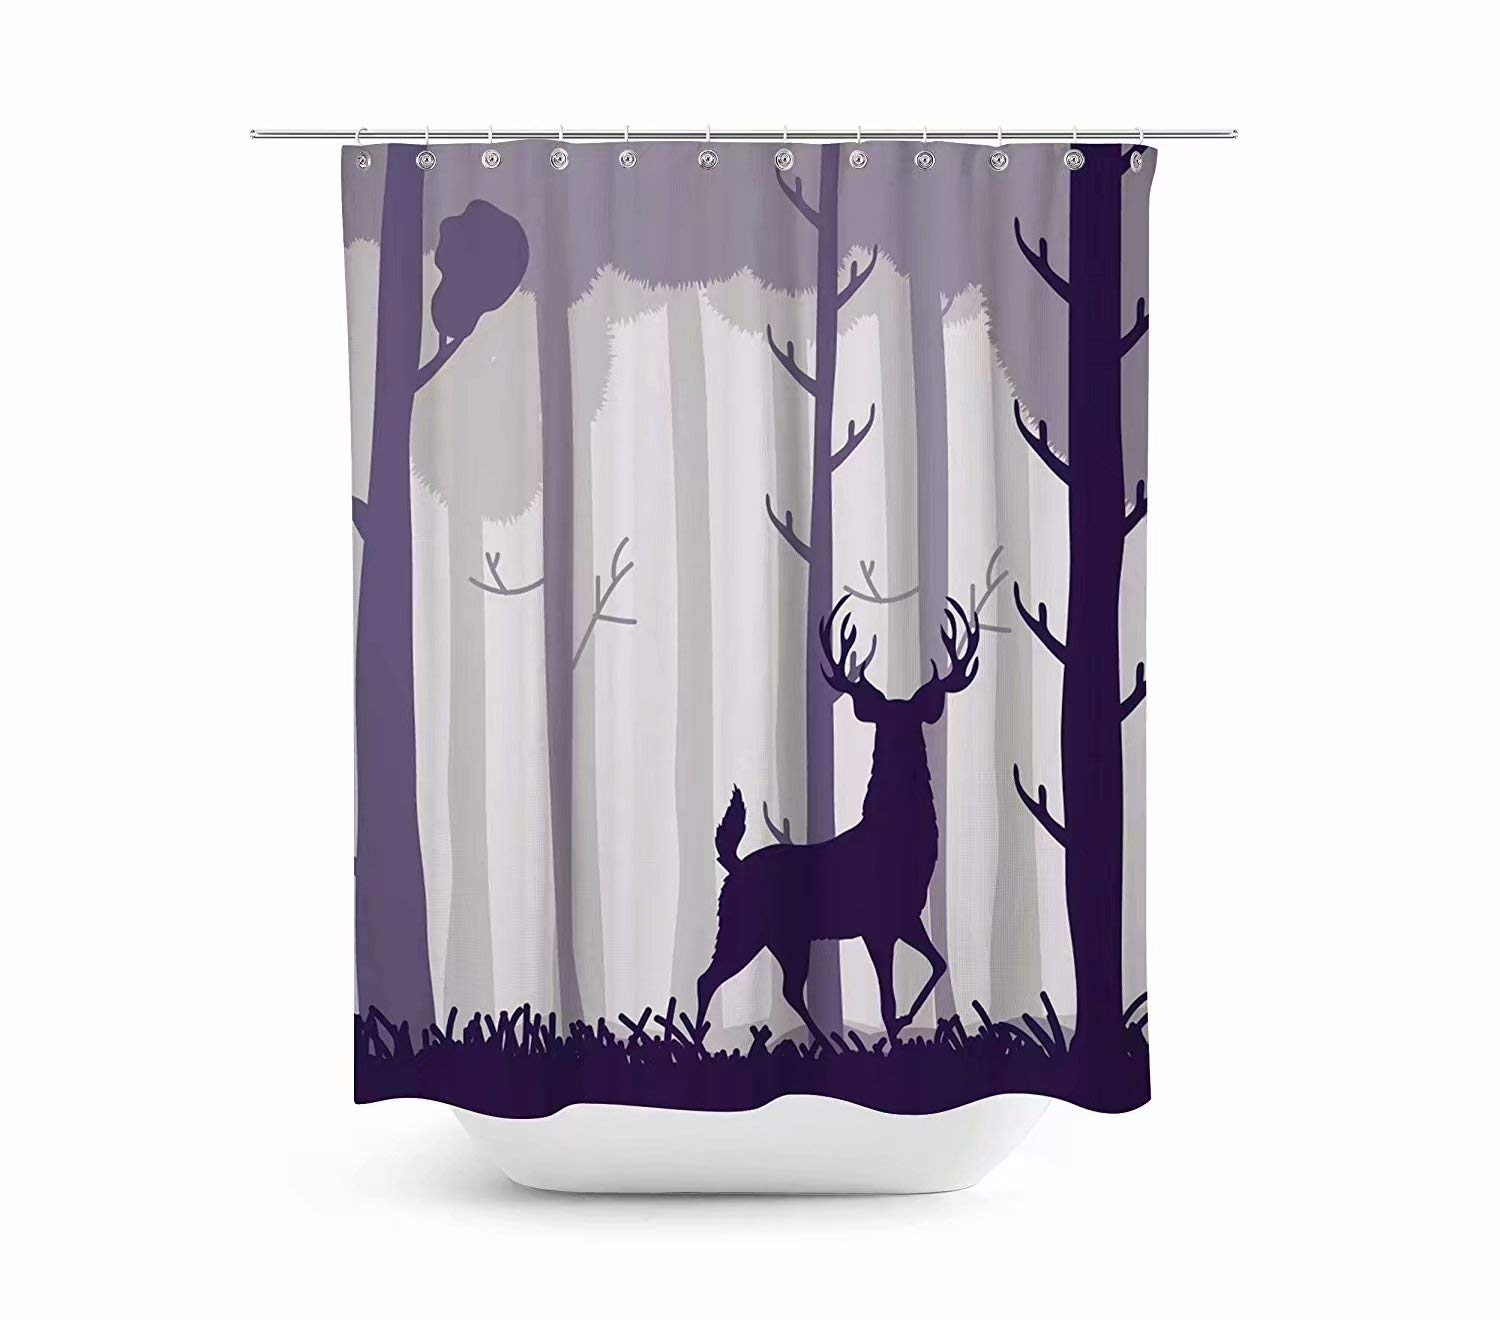 KANATSIU Deep Purple Silhouette Deer Forest Shower Curtain 12 plactic Hooks,100% Made Polyester,Mildew Resistant & Machine Washable,Width x Height is 72X72